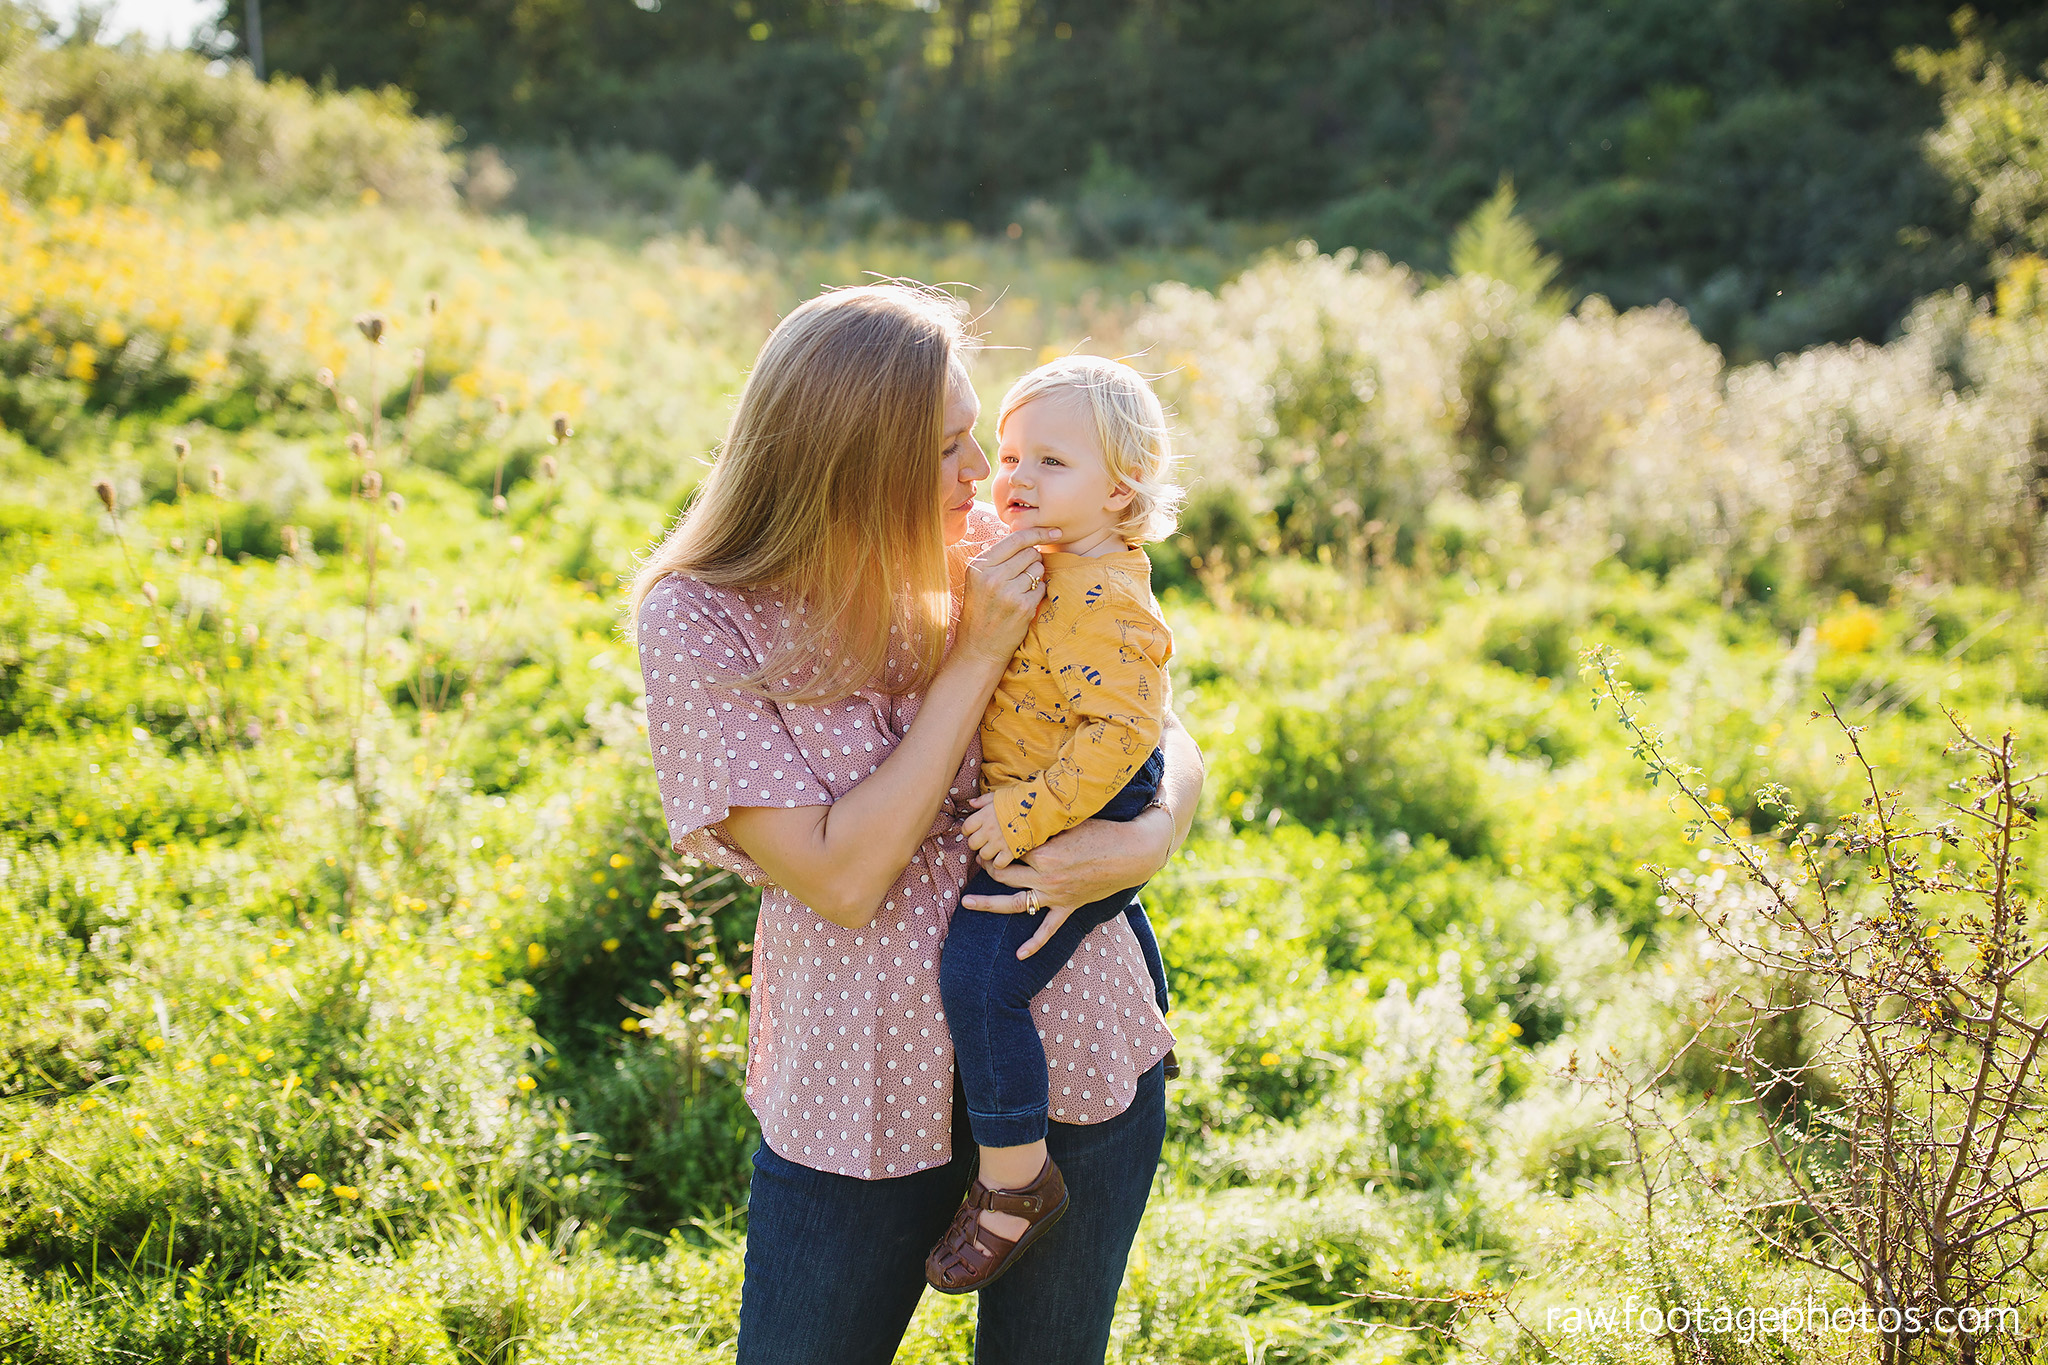 London_Ontario_Family_photographer-Fall_Minis-Woods-Forest-Nature-Candid-Lifestyle-Raw_Footage_Photography017.jpg